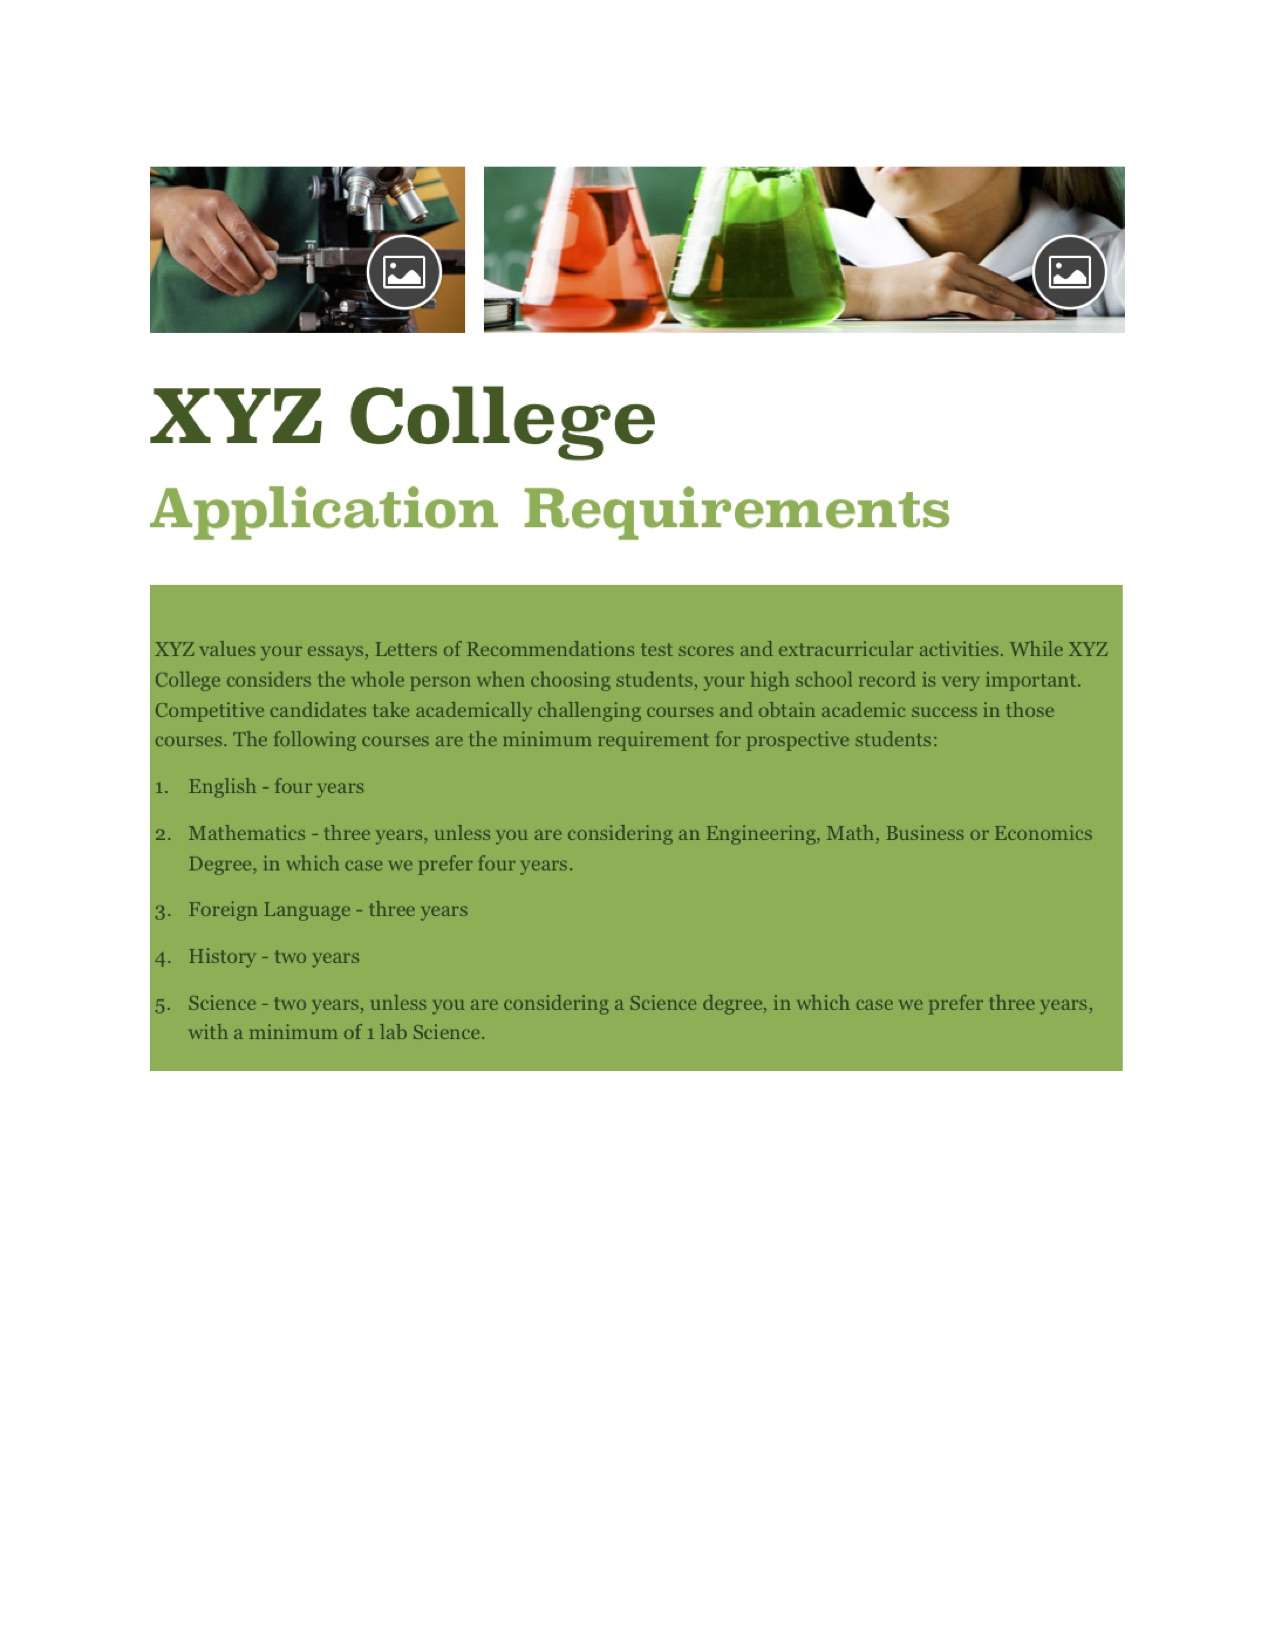 Applying to colleges requirements?